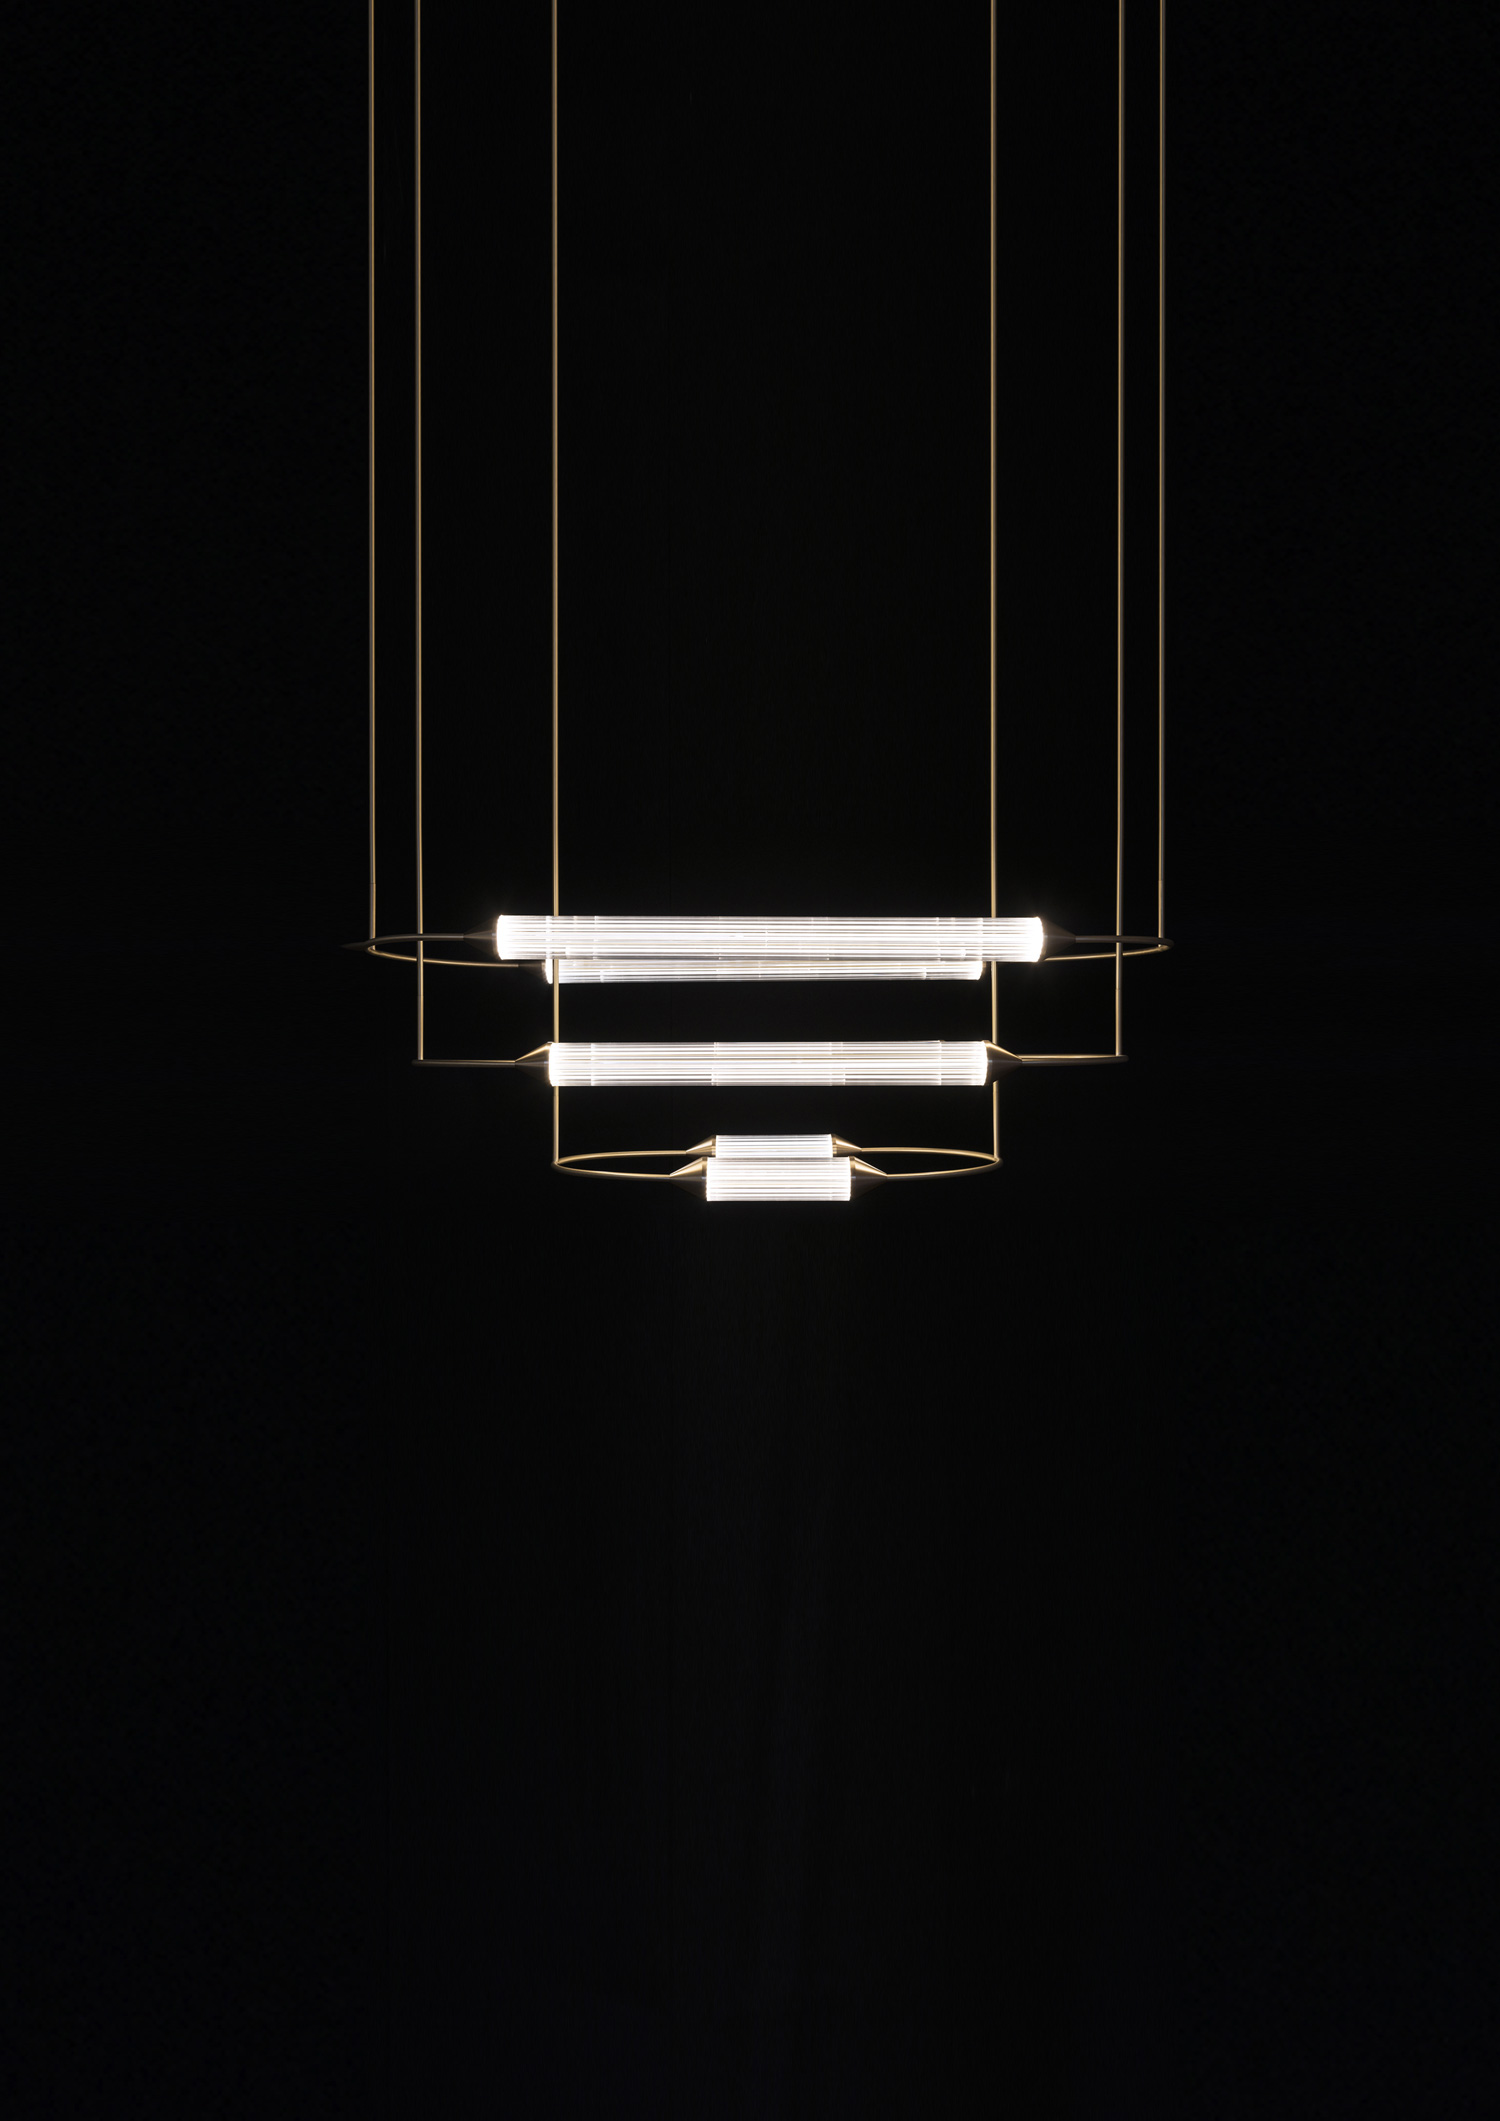 Giopato_Coombes_Cirque_Chandelier_2_Medium_2_Ph_JonBronxl.jpg